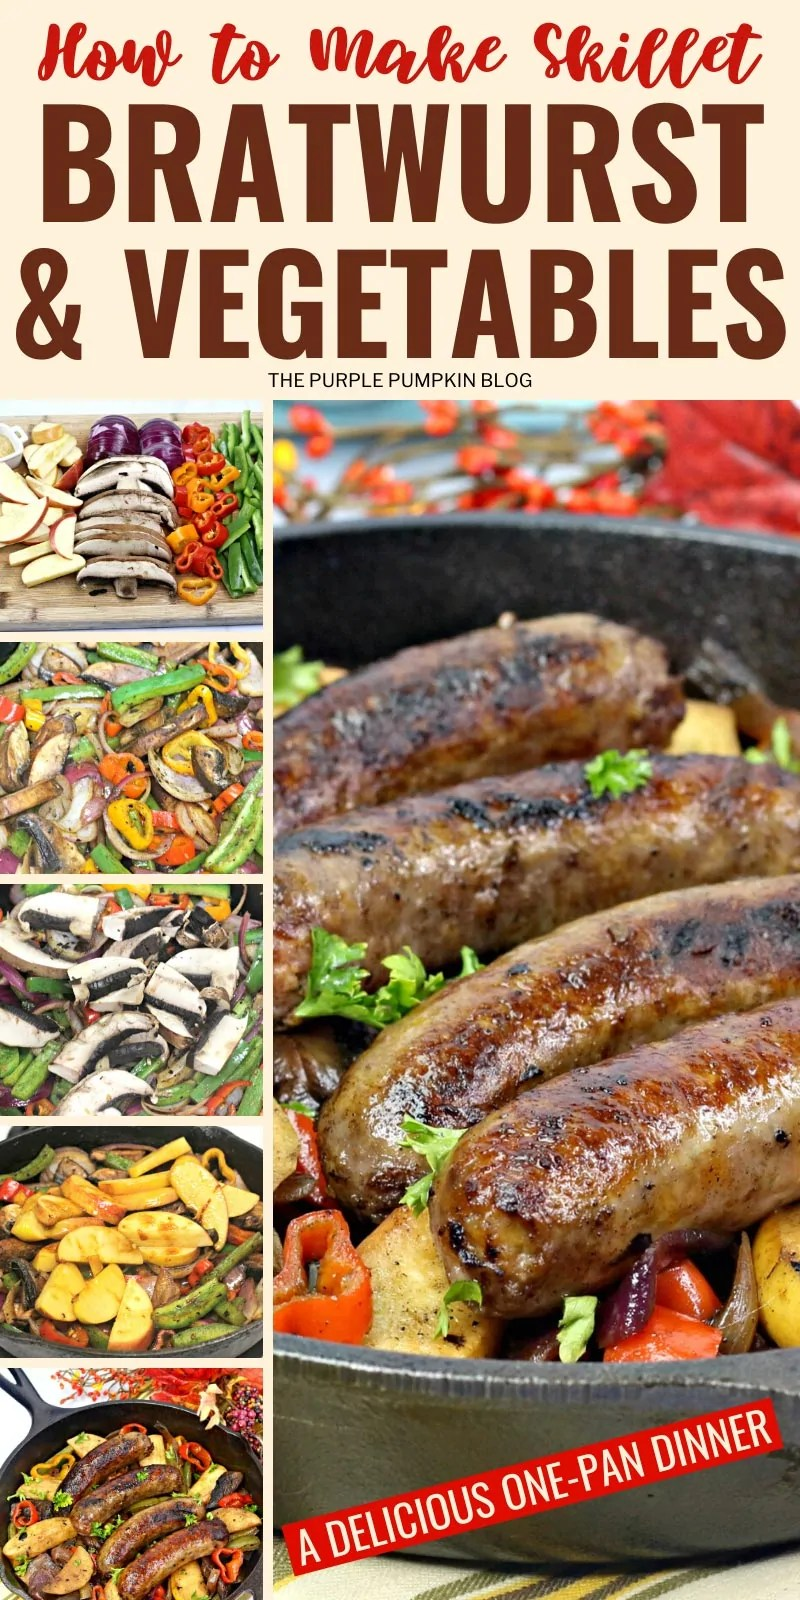 How to make skillet bratwurst and vegetables